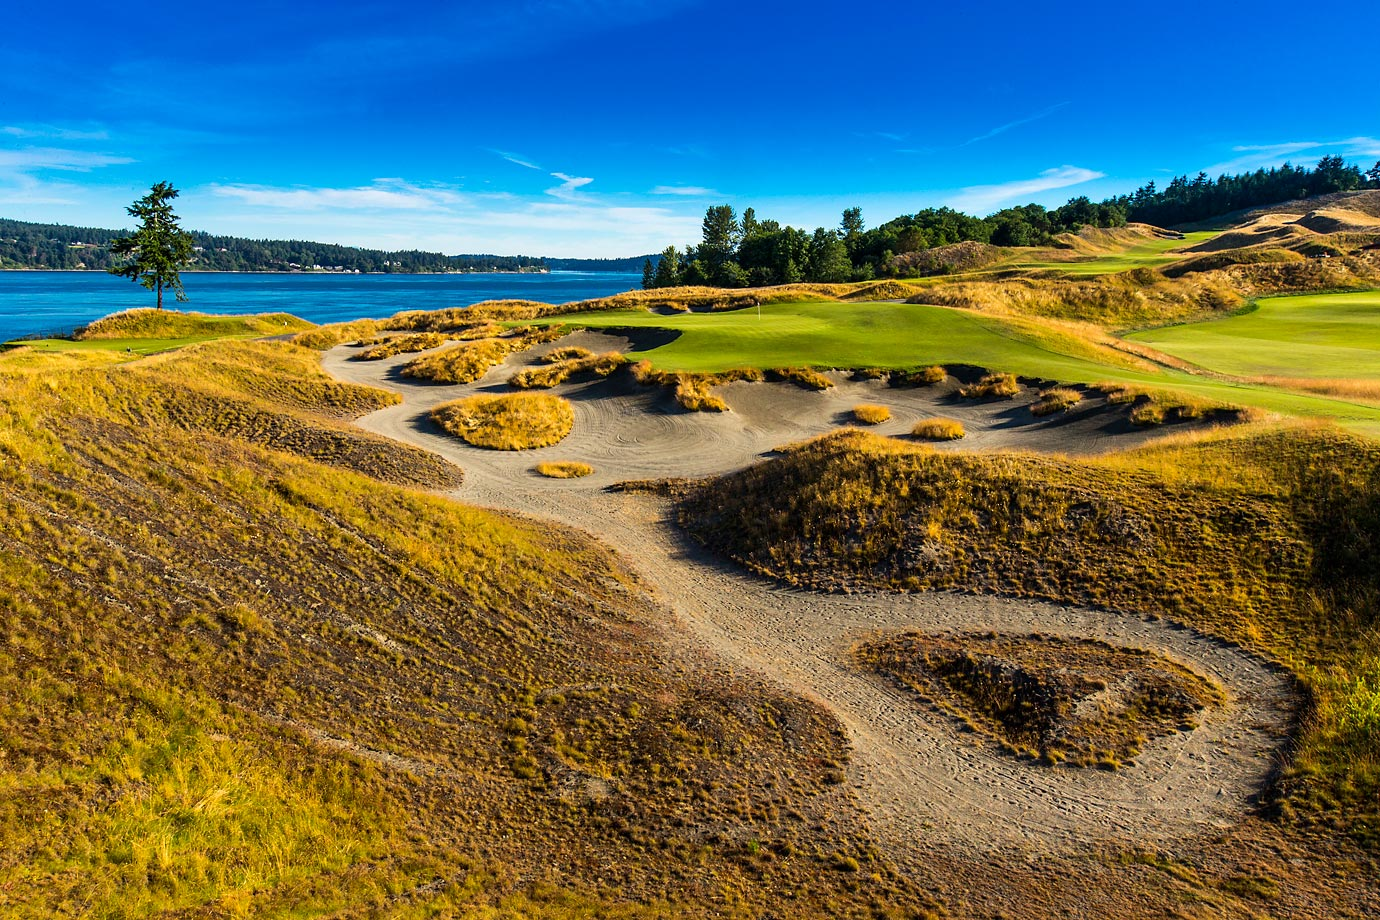 The par-three third hole is known as 'Blown Out'. It earned its nickname because of the strong winds that change the way the hole is played on a daily basis.